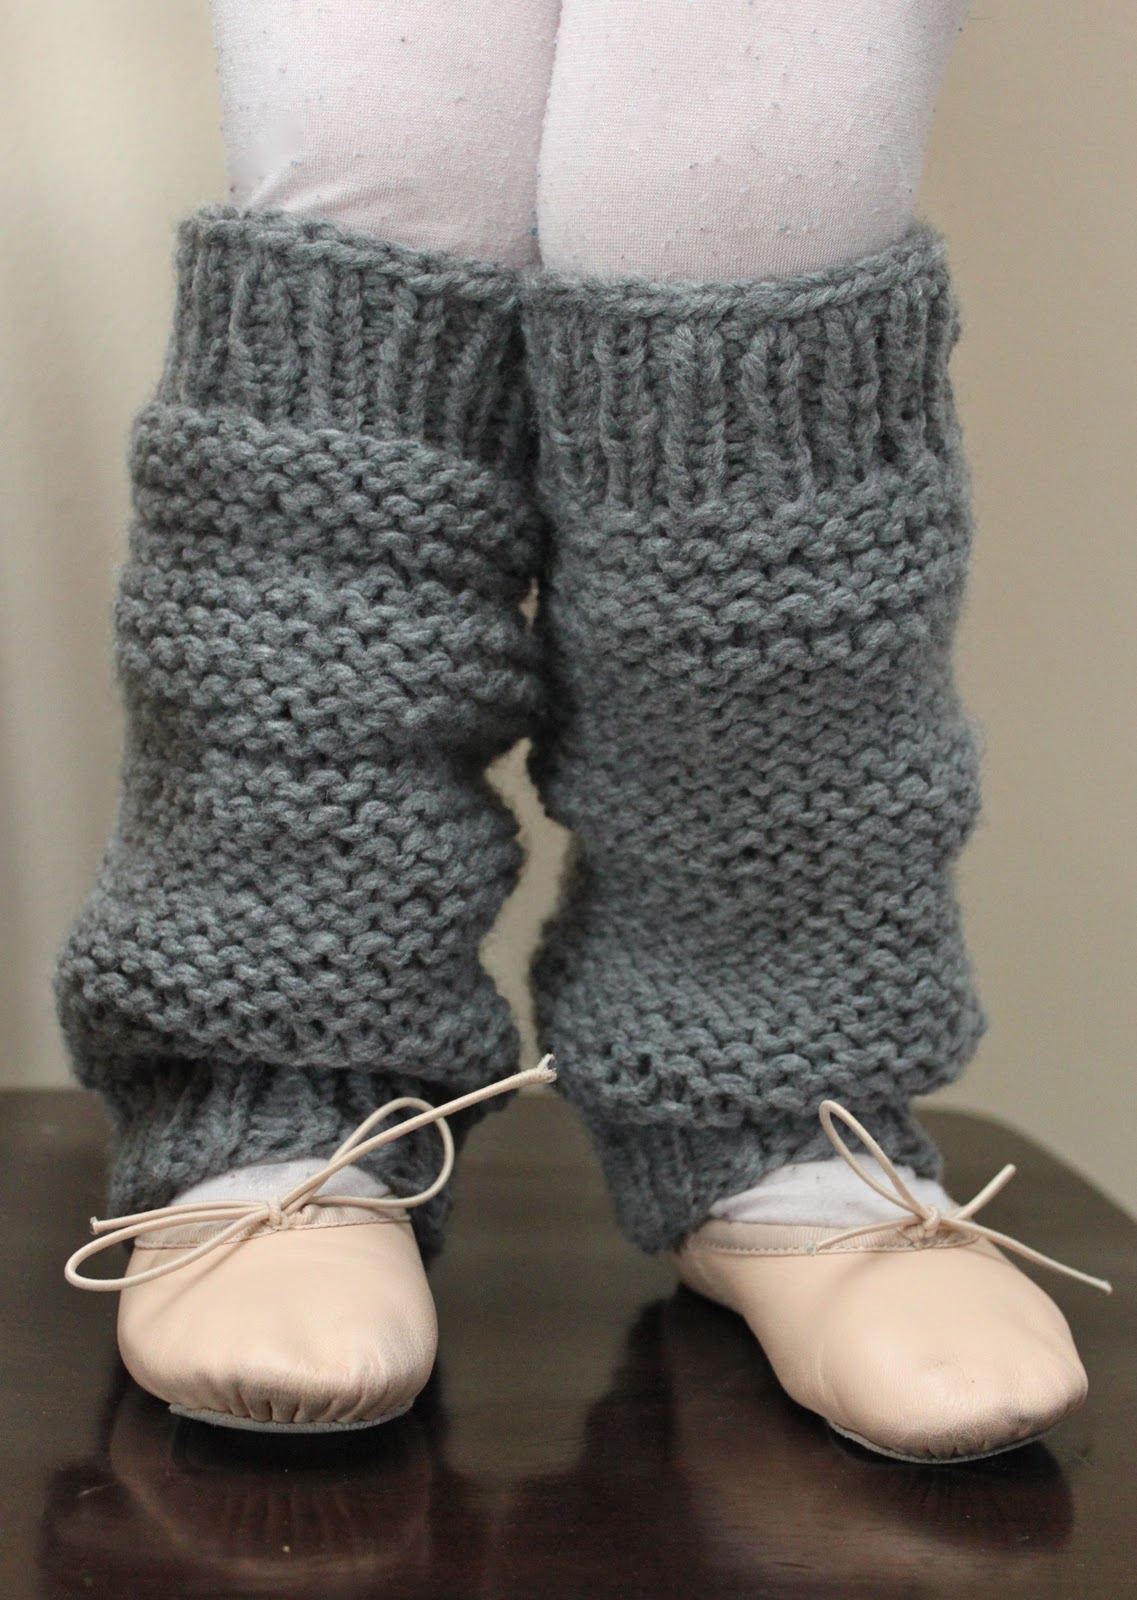 Knit Leg Warmer Patterns Free : Little Girls Knit Legwarmers {A Pattern} - Smashed Peas & Carrots